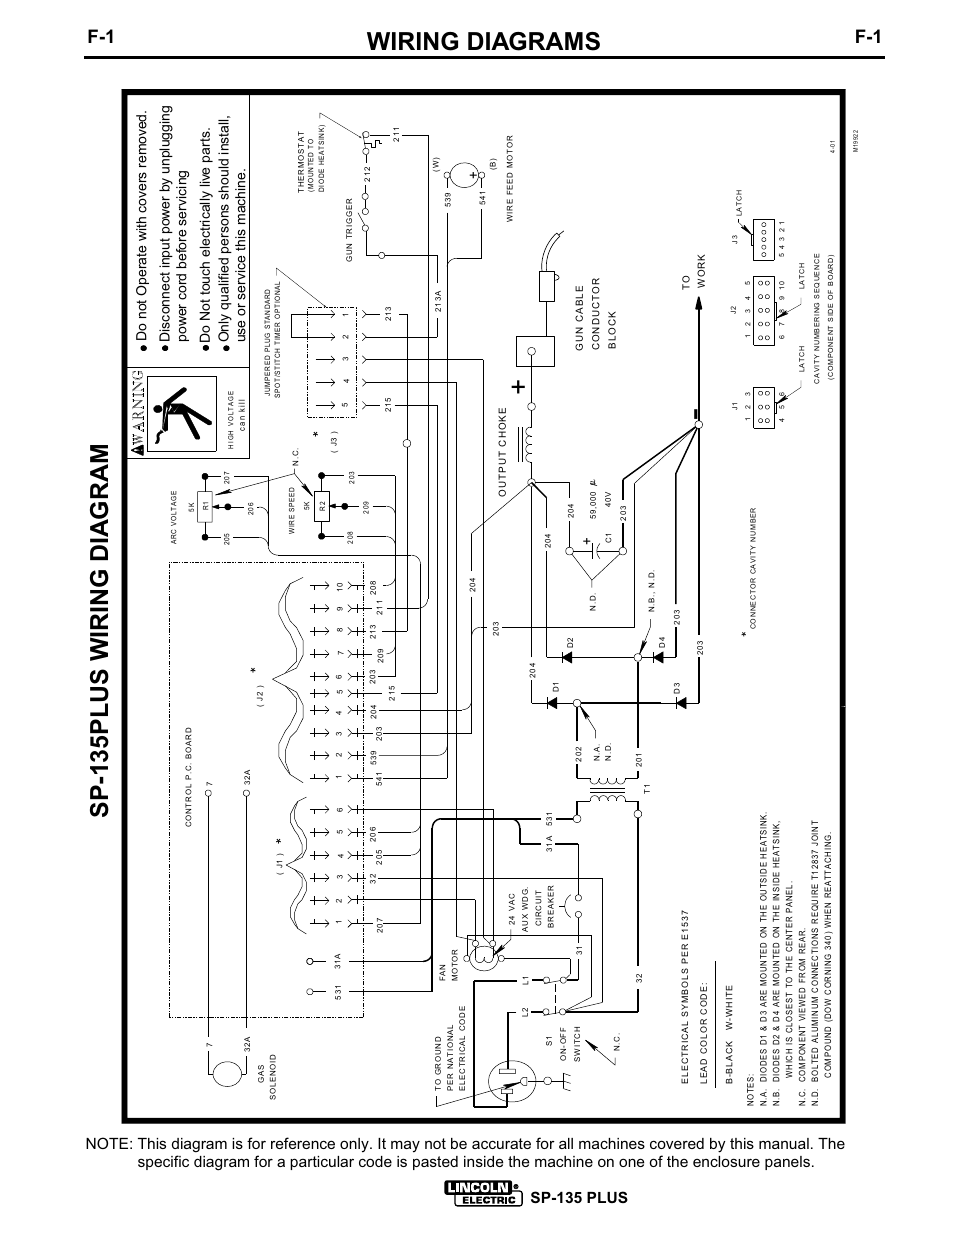 hight resolution of wiring diagrams sp 135plus wiring dia gram sp 135 plus lincoln